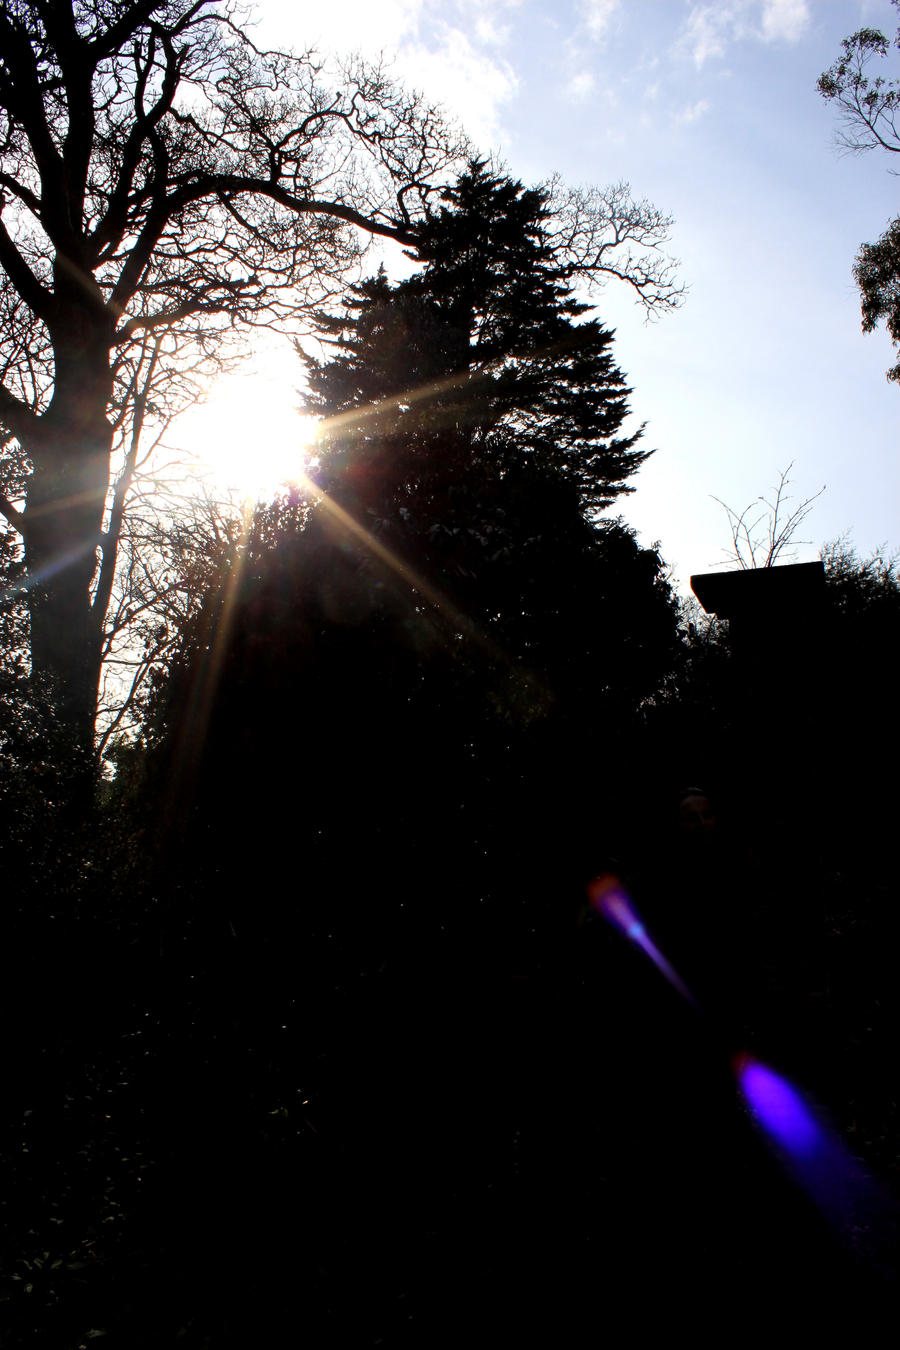 Sun shining through the trees by Living-Life-Loud